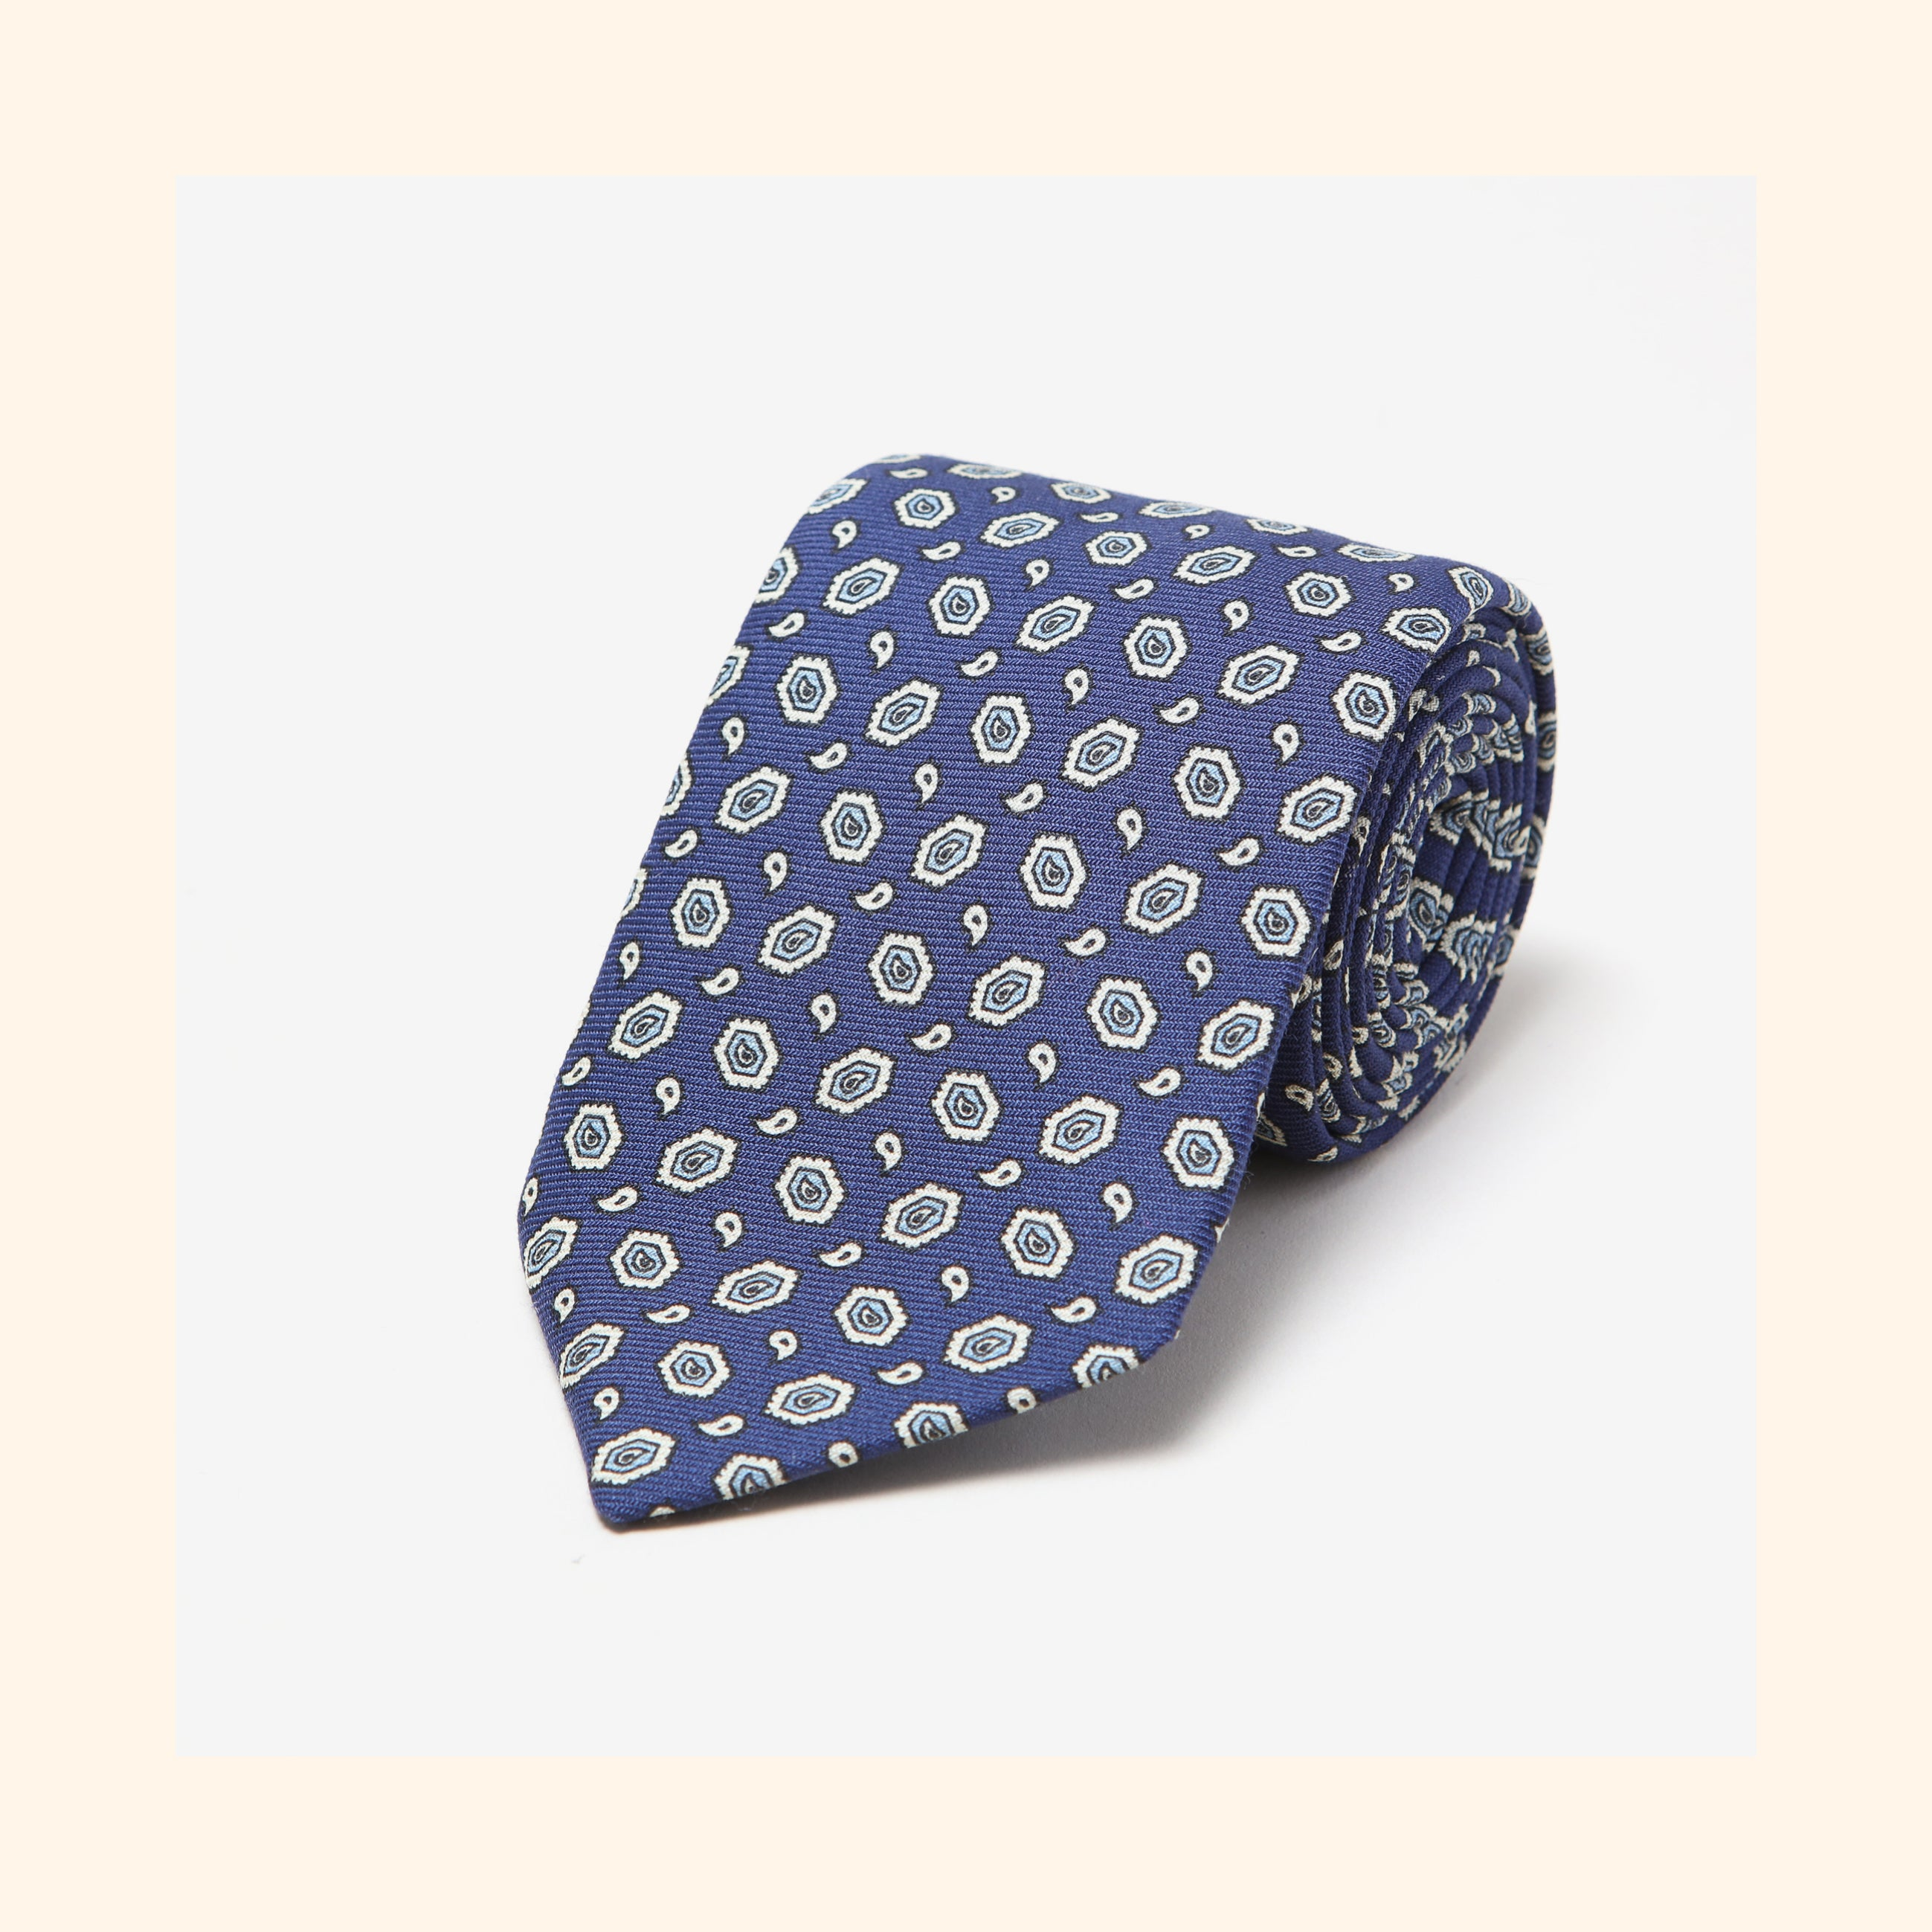 № 029 - Blue/Ivory Hexagon Paisley Screen-Printed Wool Challis Tie